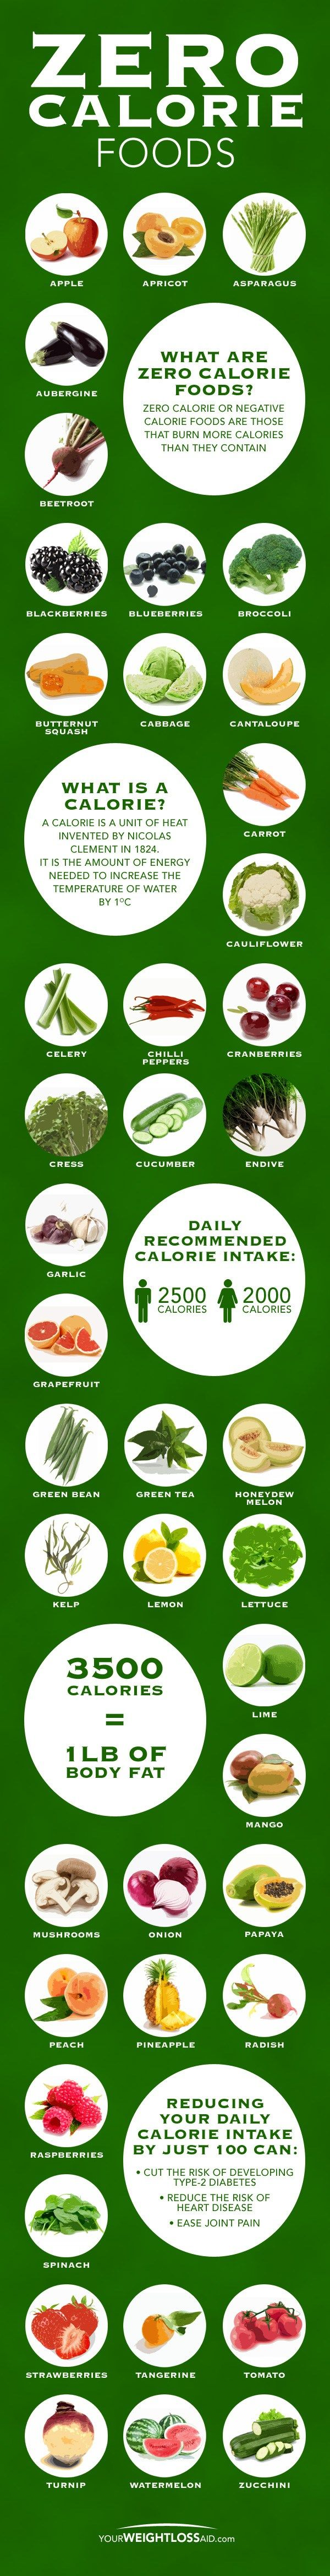 Zero calorie foods are a great way to snack or to stop hunger! These are some of the ones you can eat on the 500 calorie diet.